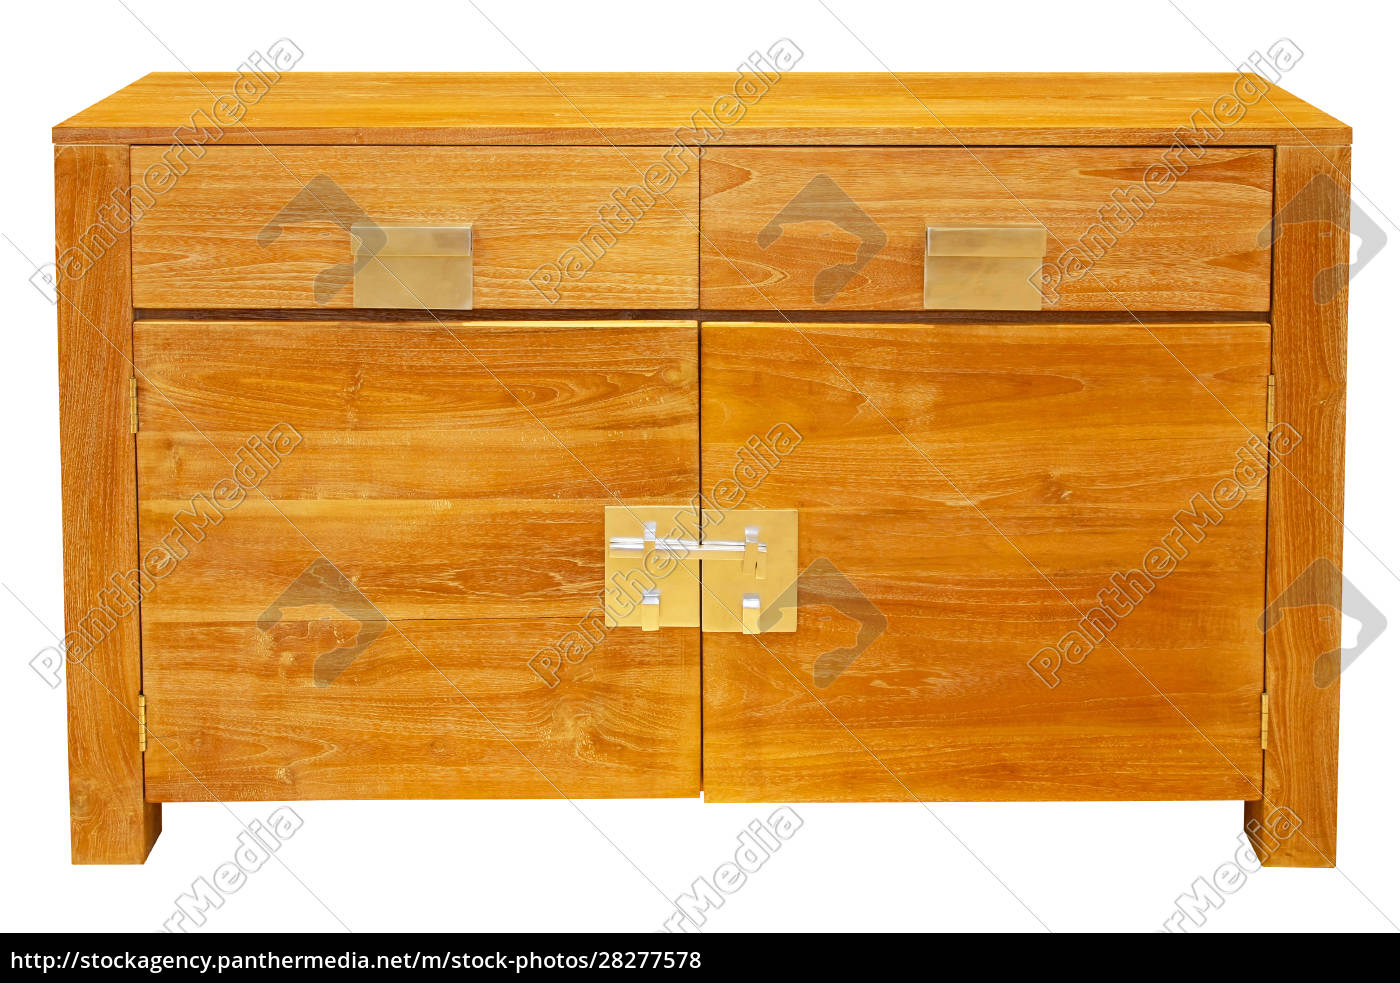 cabinet, isolated - 28277578